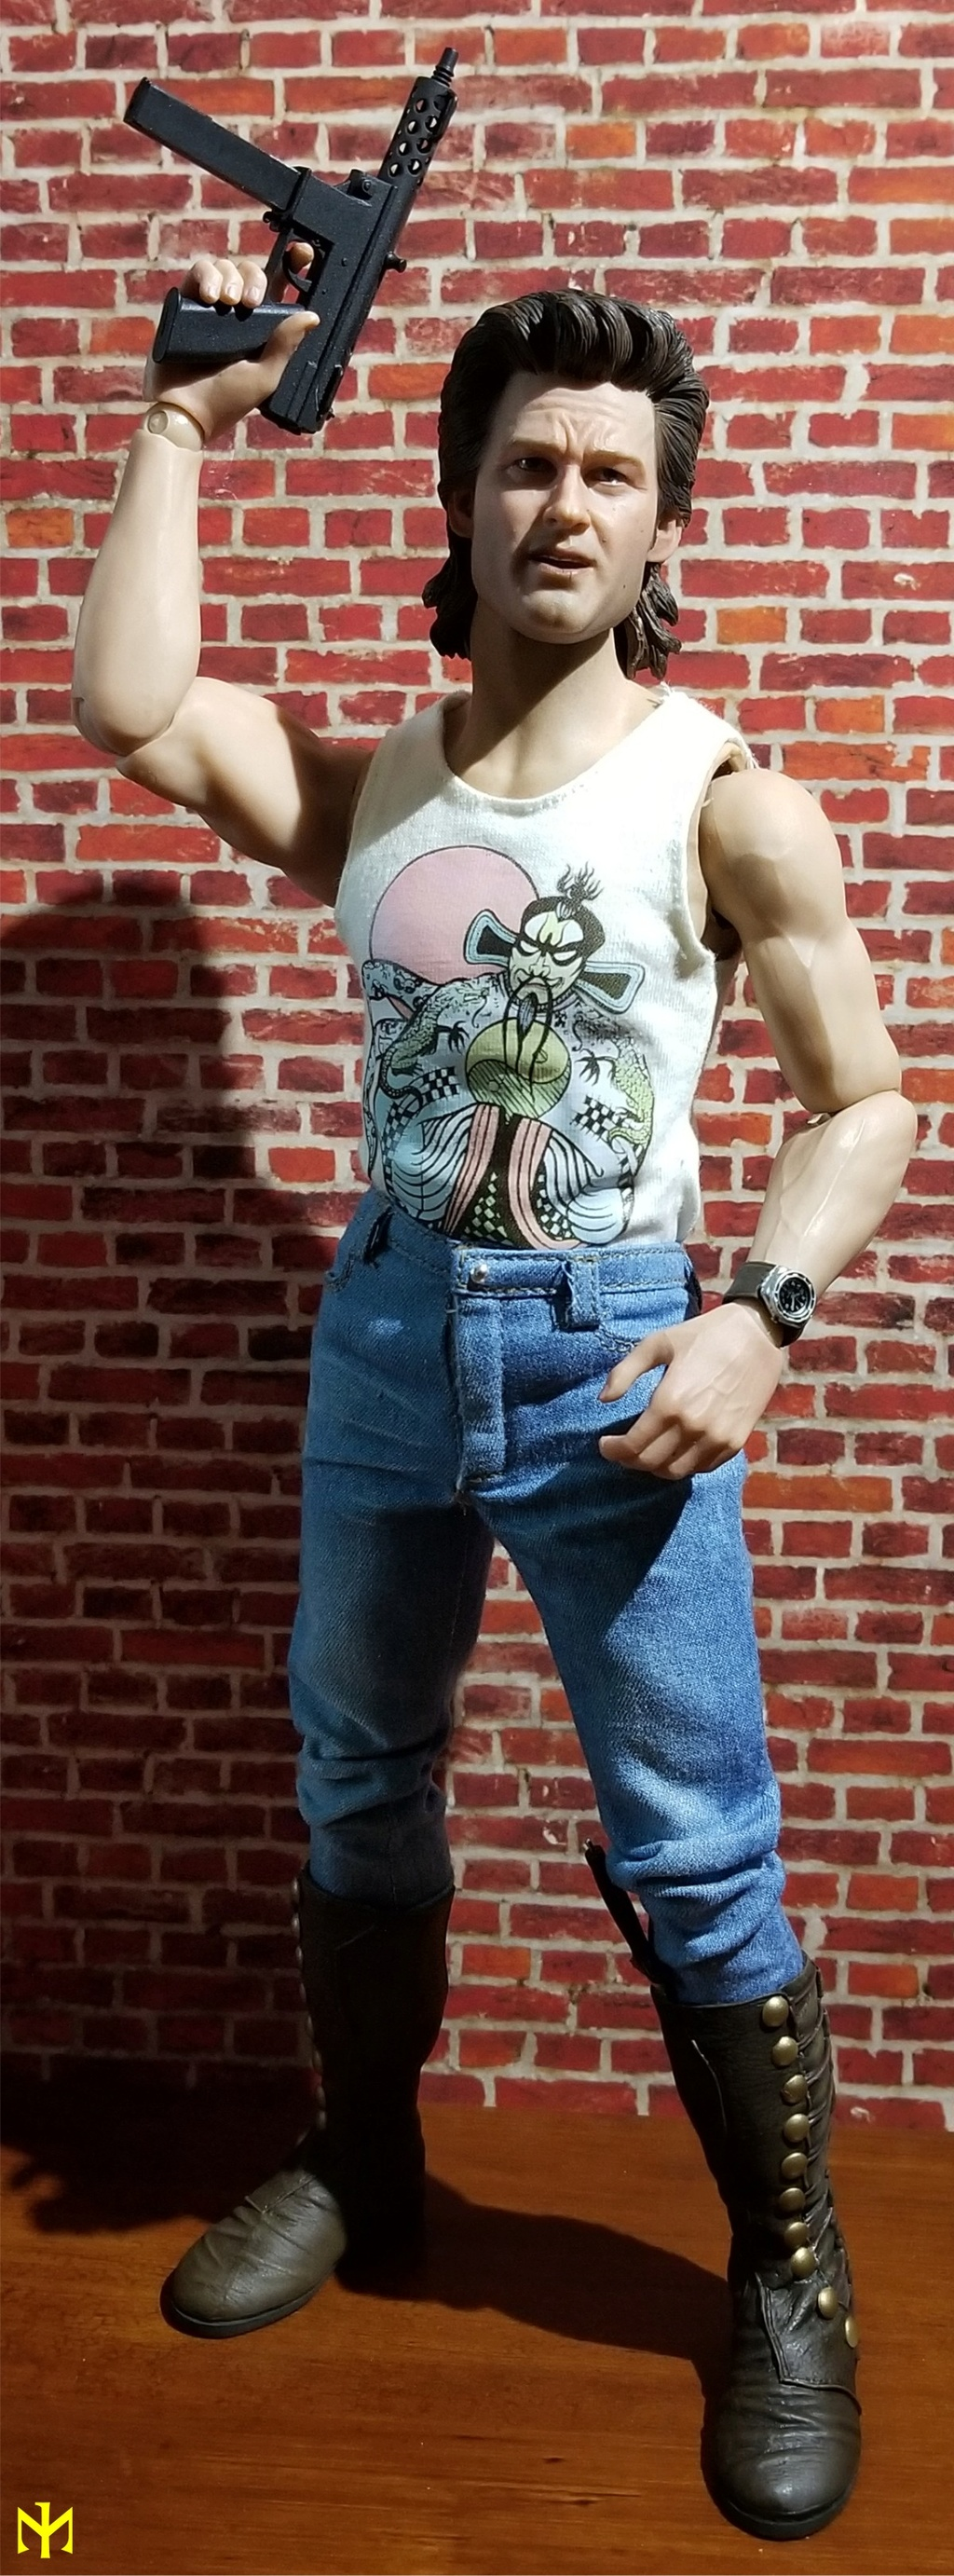 bigtroubleinlittlechina - Sideshow Jack Burton Detailed Review Sscjb112